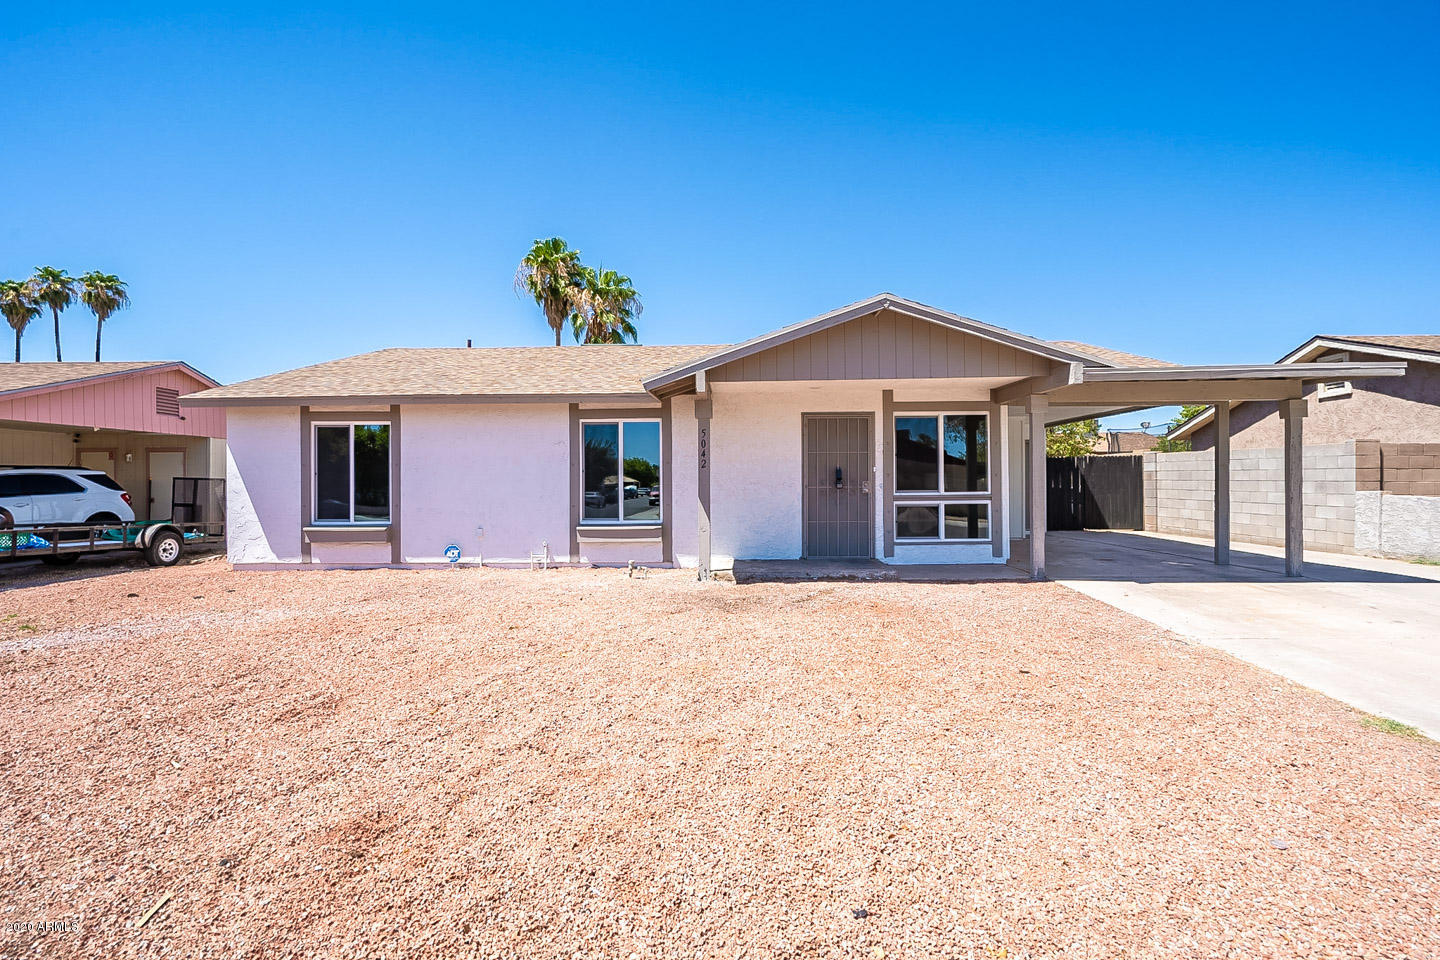 Photo of 5042 W VIRGINIA Avenue, Phoenix, AZ 85035